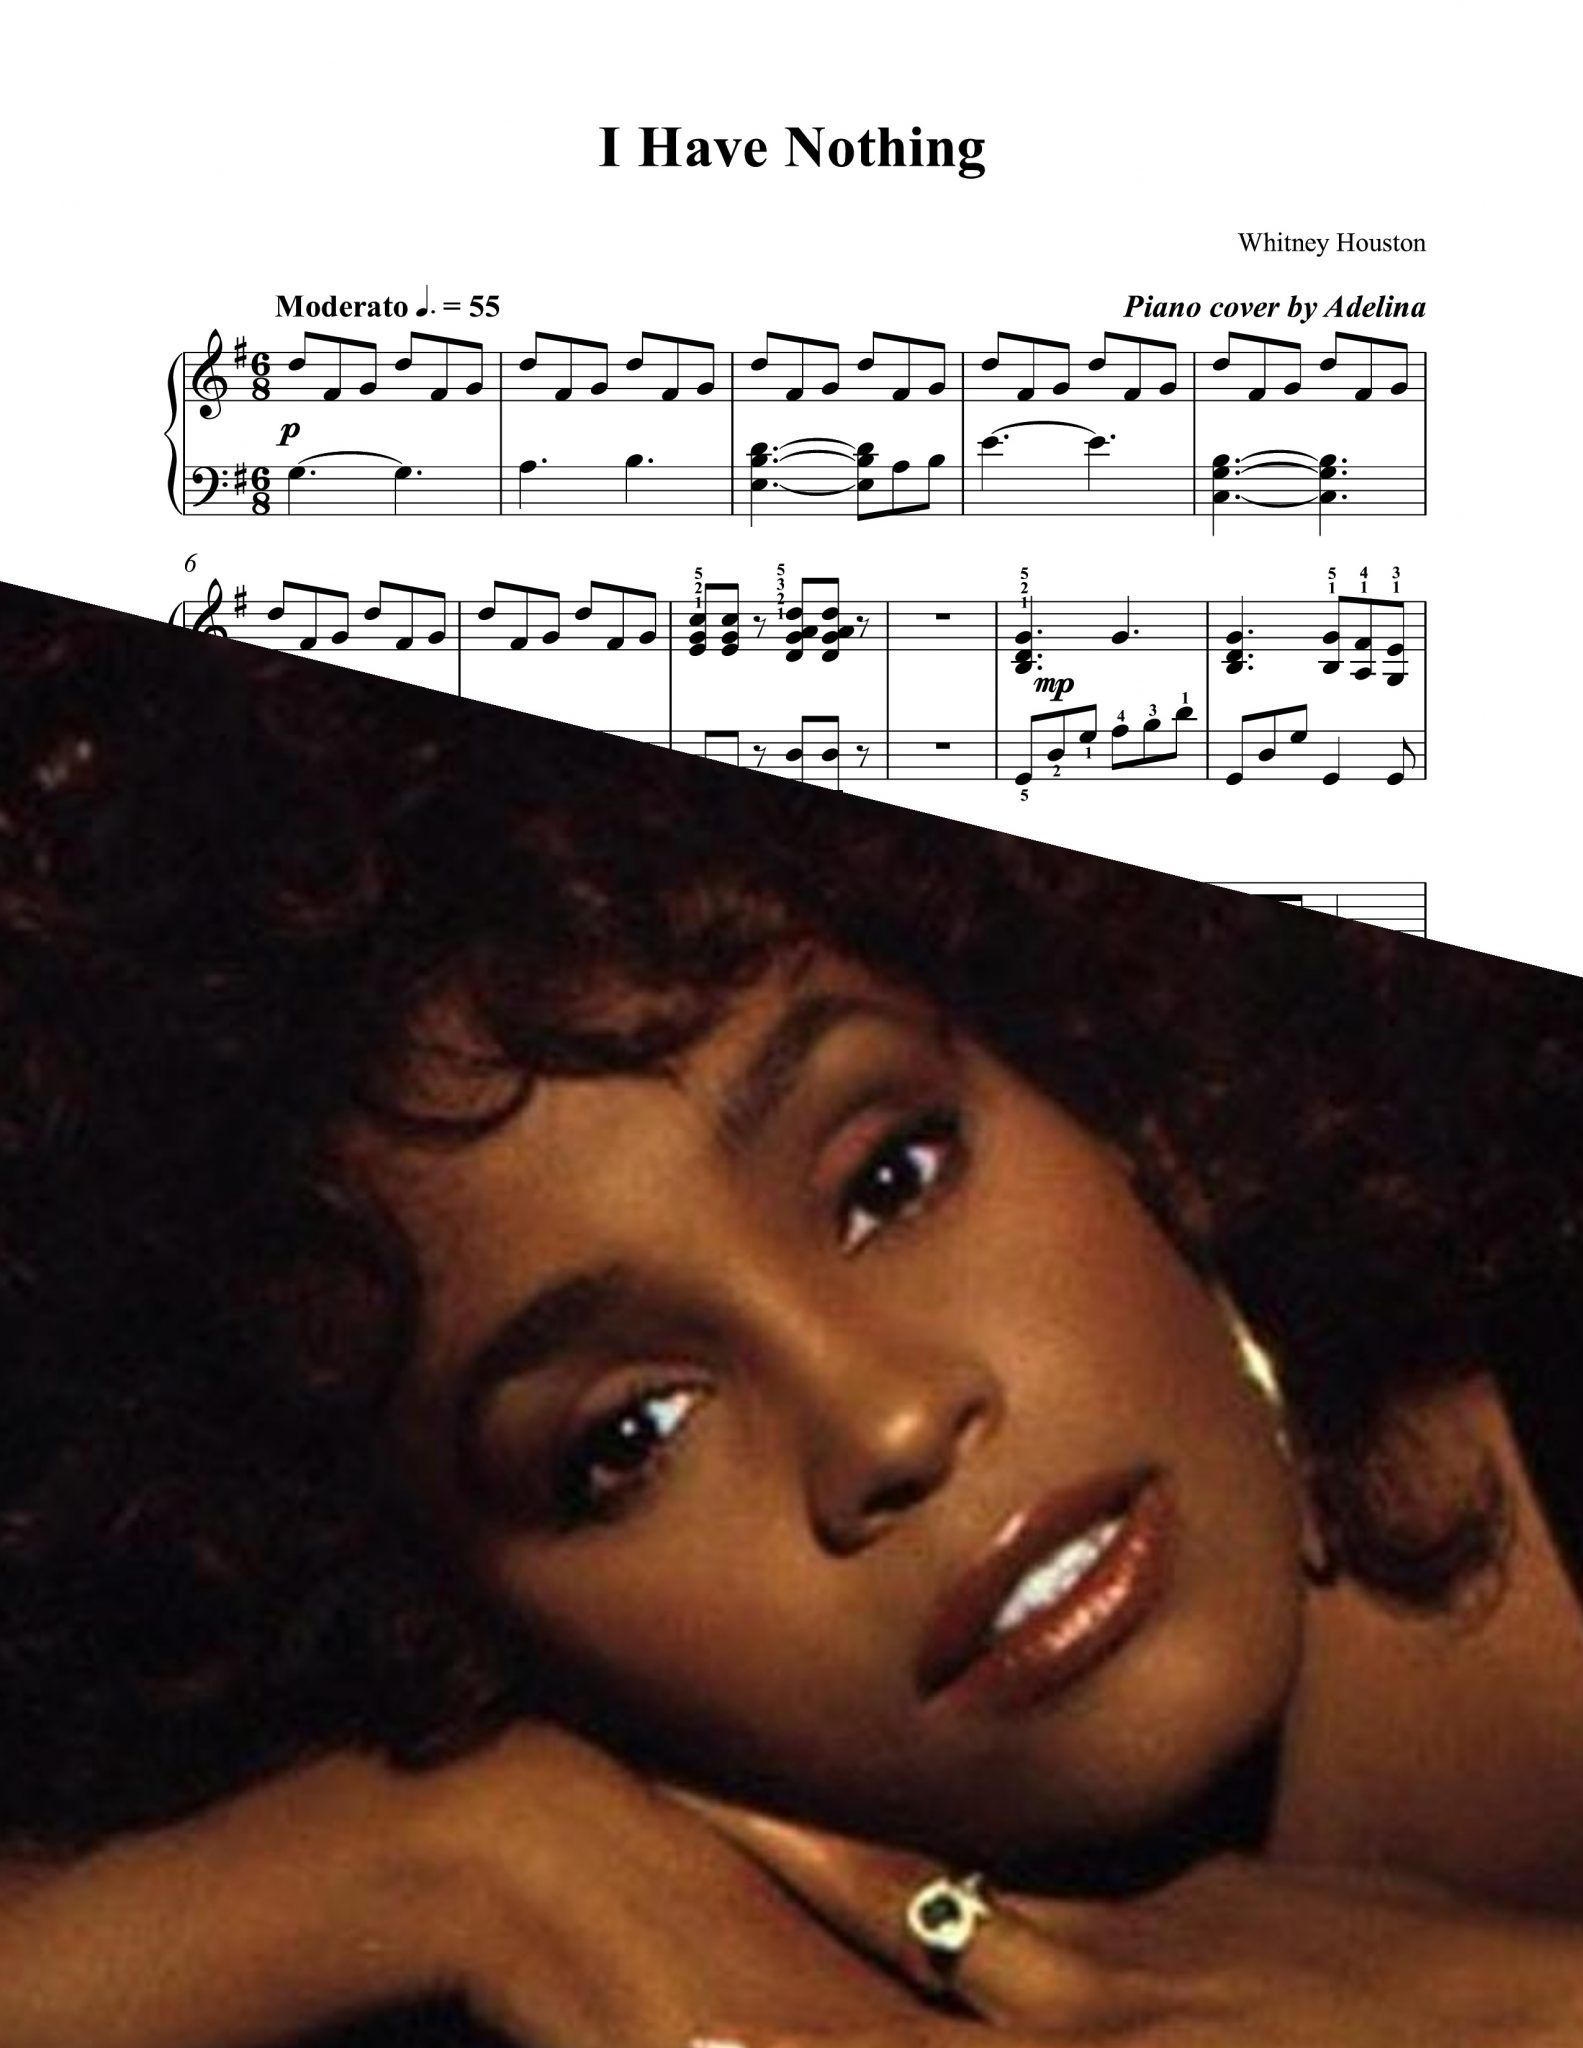 whitney houston i have nothing piano pdf